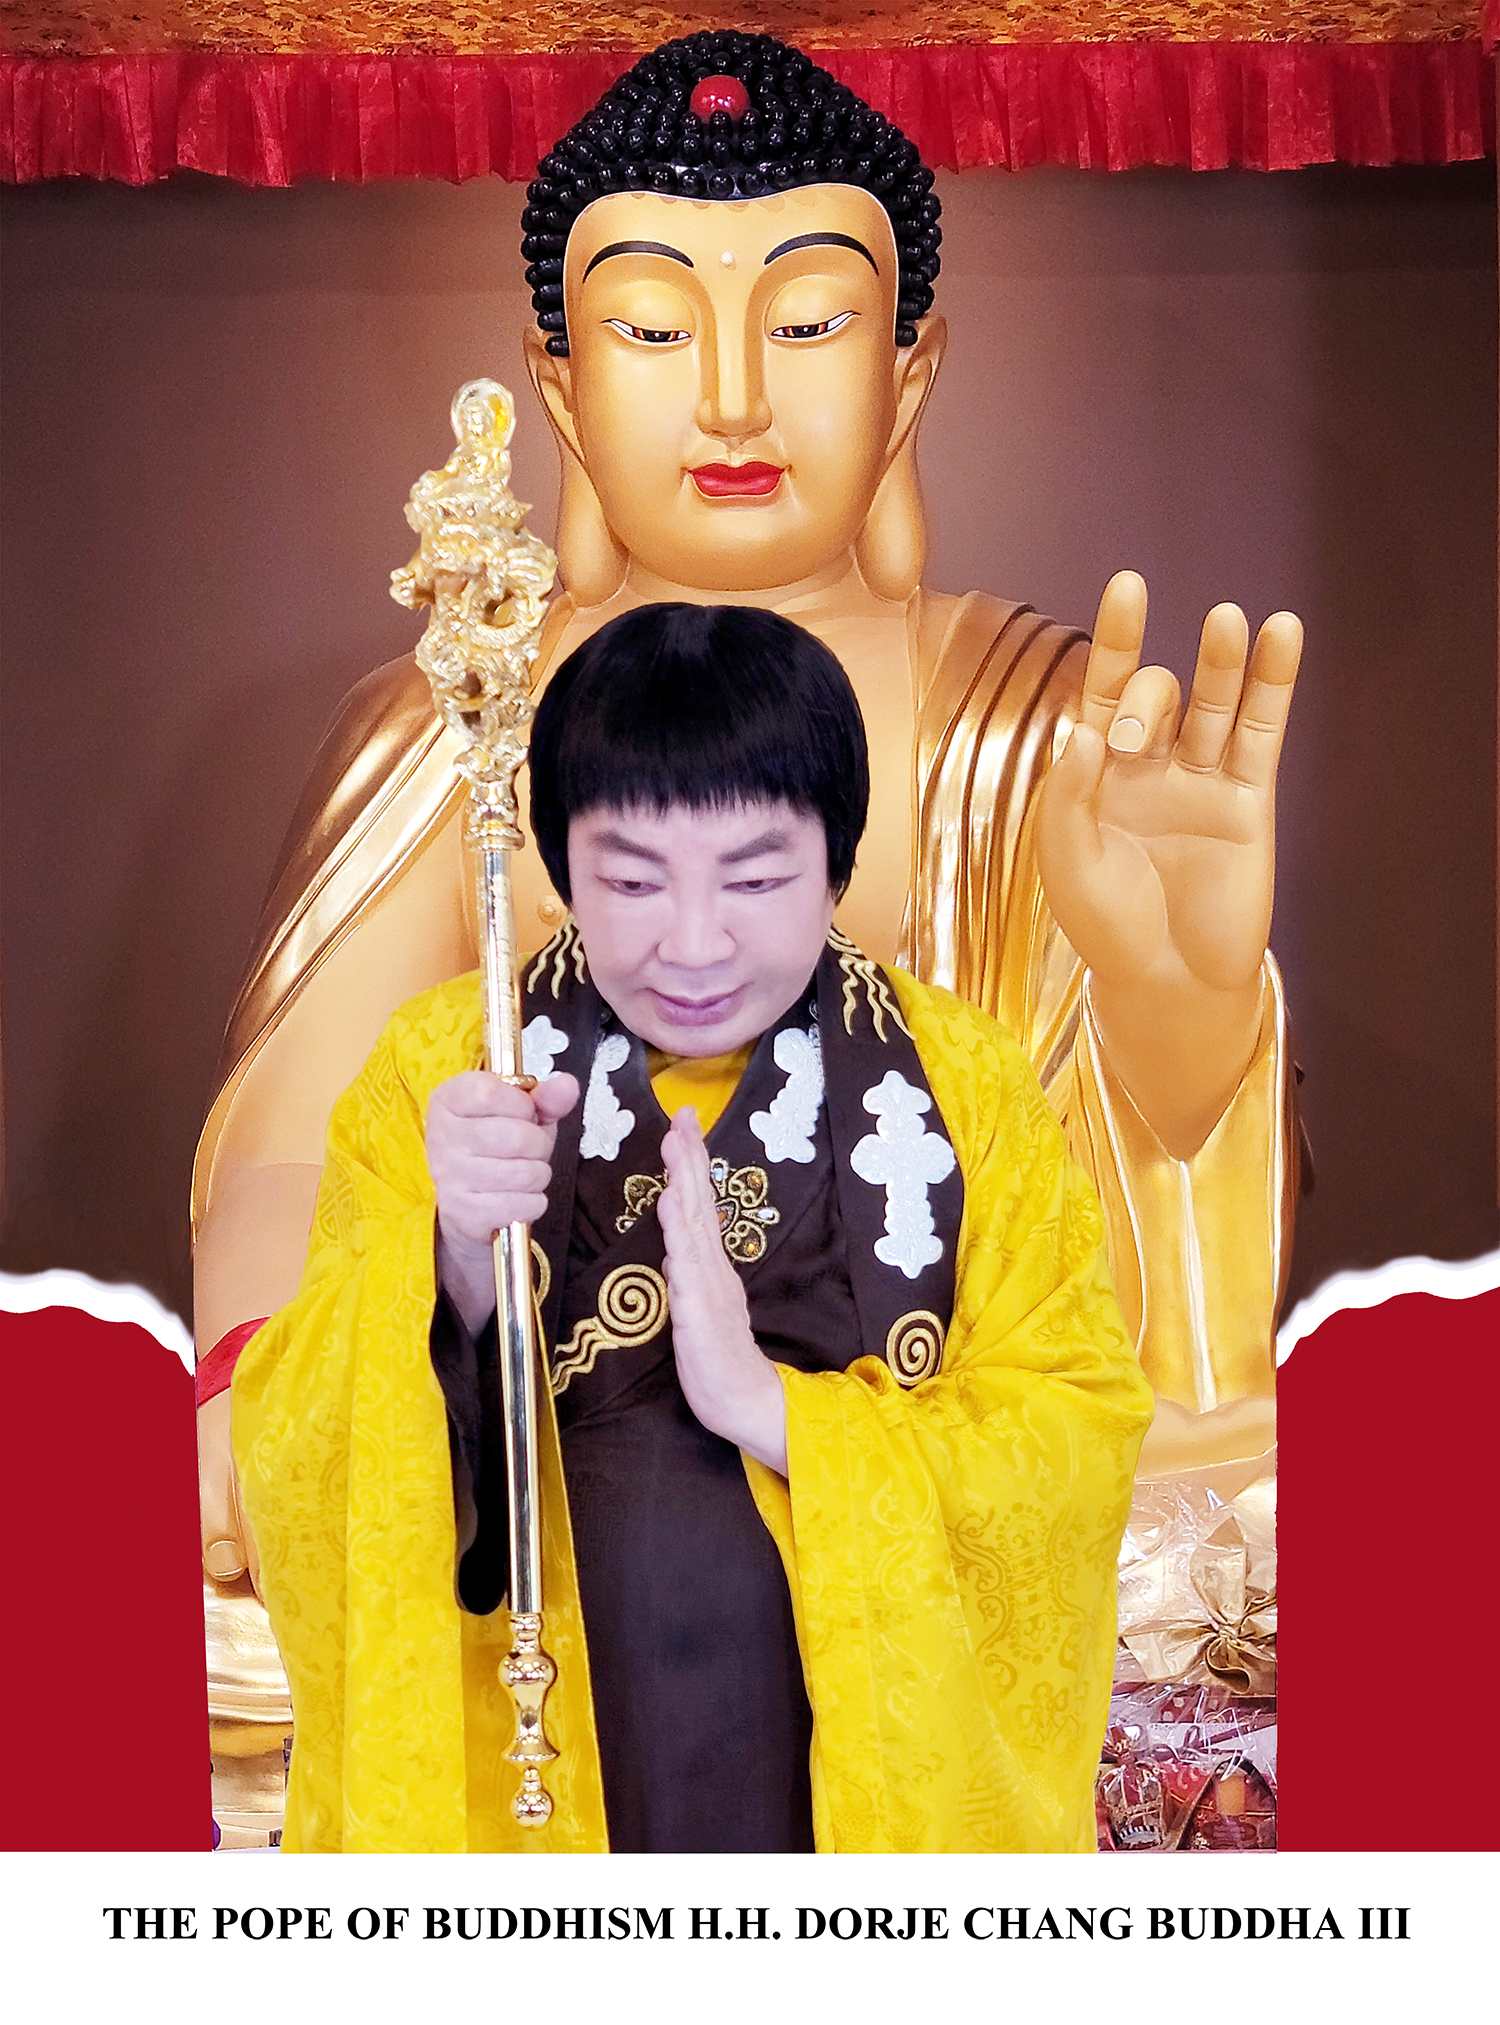 The Pope of Buddhism H.H. Dorje Chang Buddha III